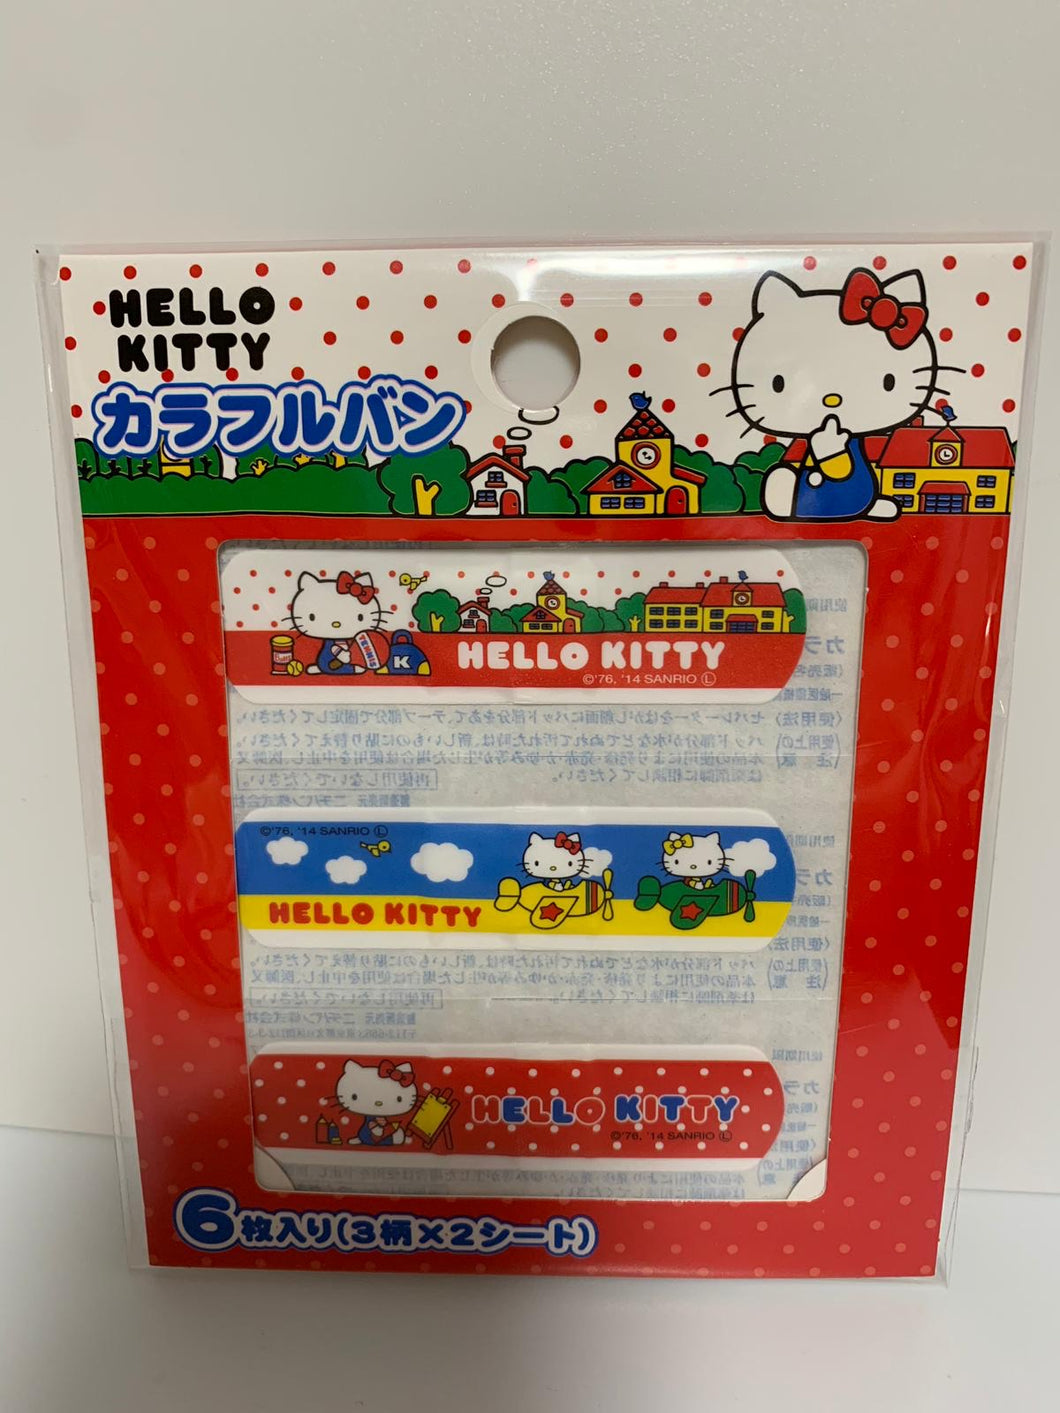 Band aid curativos Hello kitty & My Melody